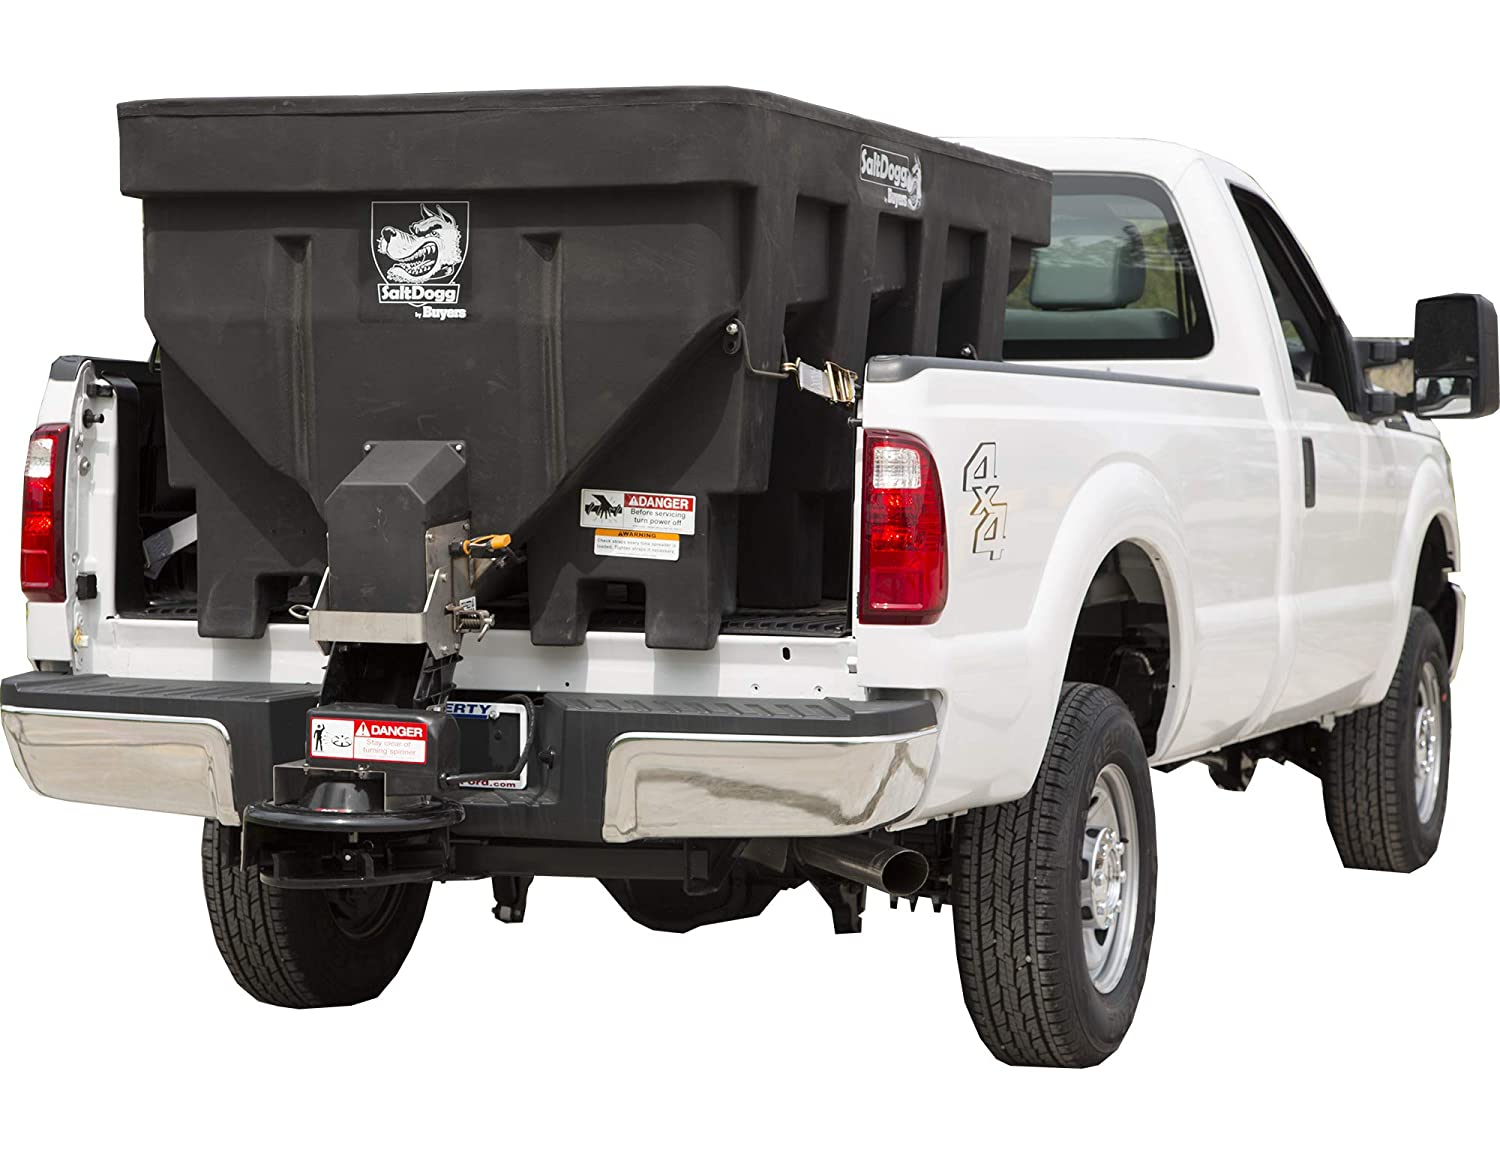 SaltDogg SHPE2000 Electric Poly Hopper Spreader 2.0 Cubic Yards Black Buyers Products